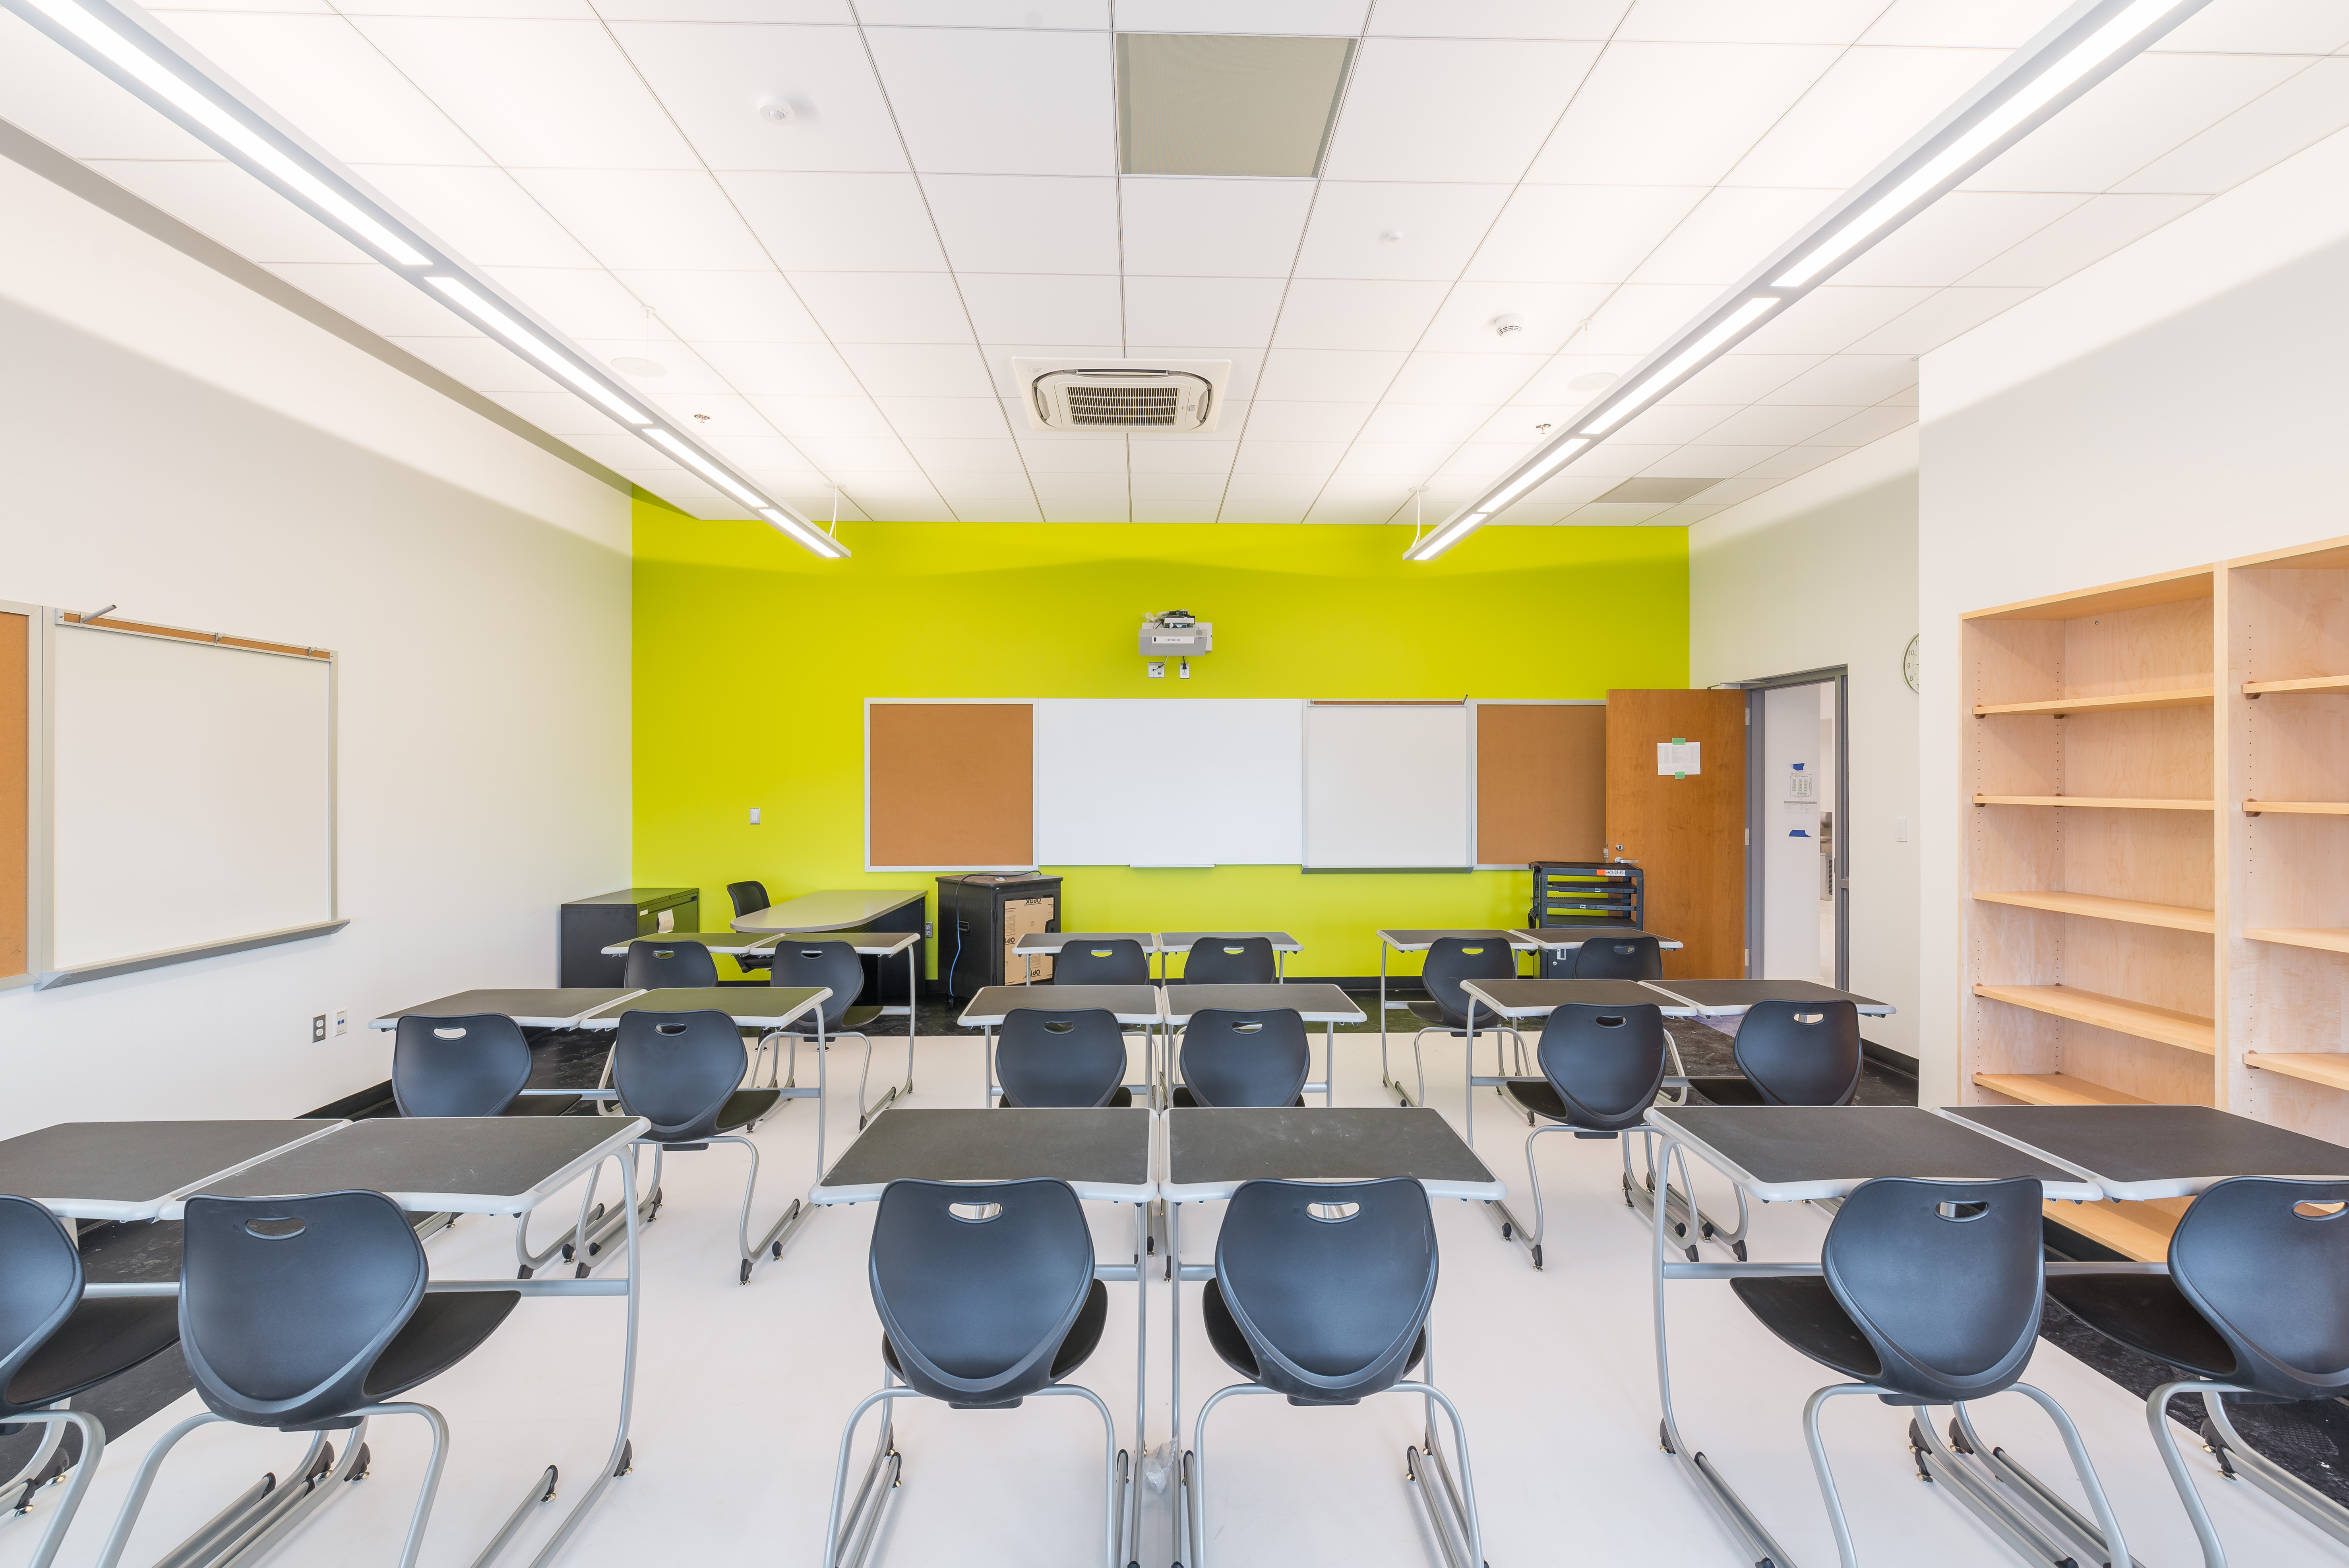 The smart school of the future must improve school health and safety with better indoor air and water quality, hybrid learning support and principles of design for learning.